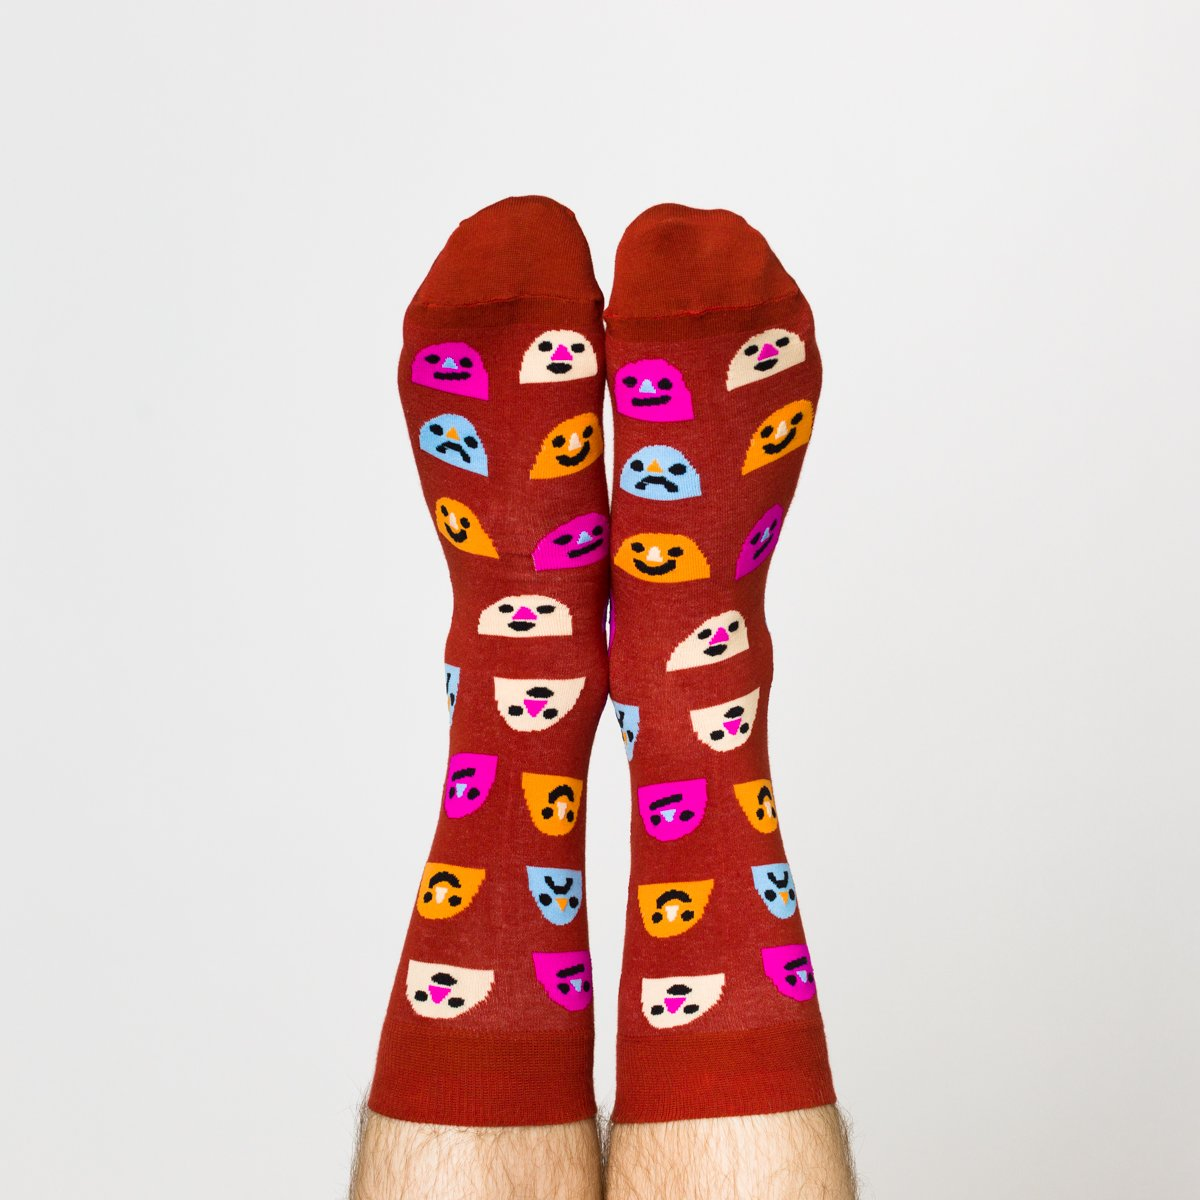 Mixed Emotions Crew Socks - Mens